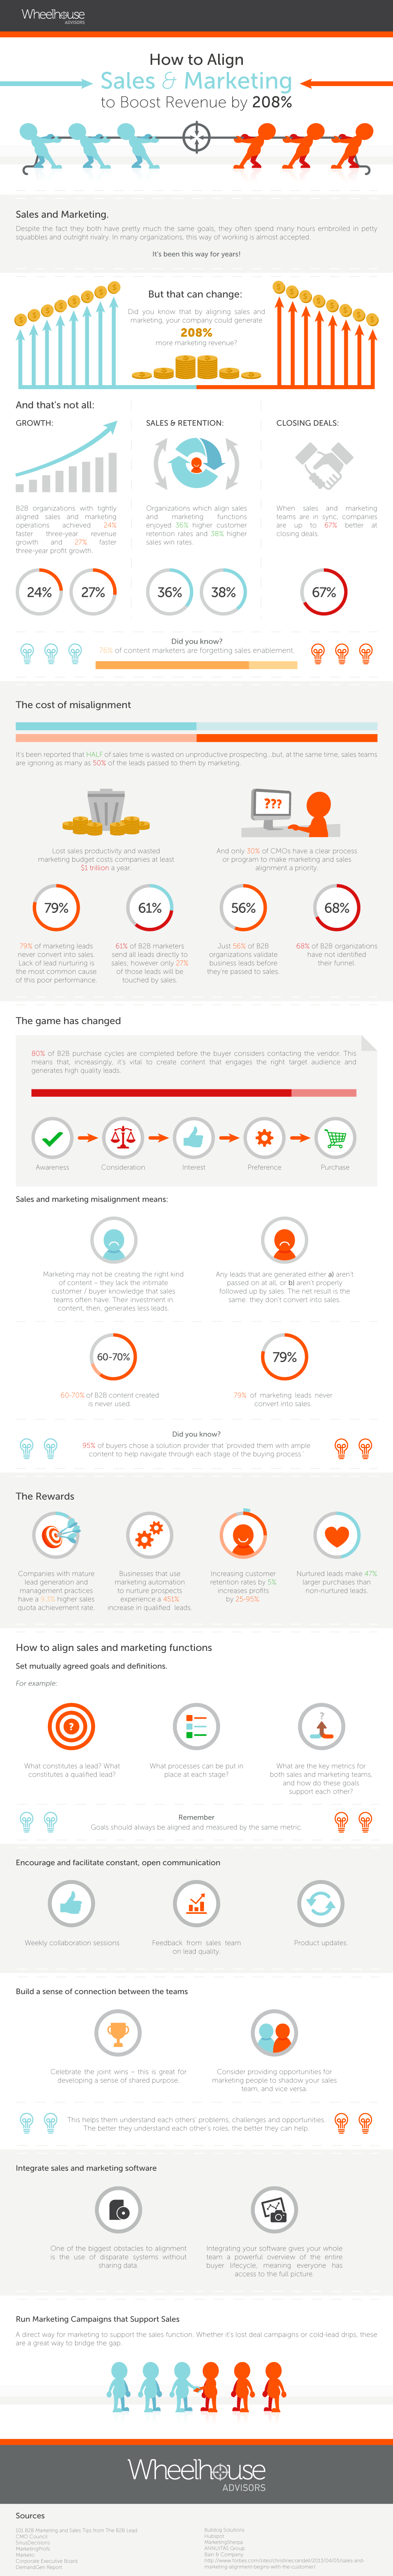 How to Align Sales and Marketing to Boost Revenue by 208% #infographic